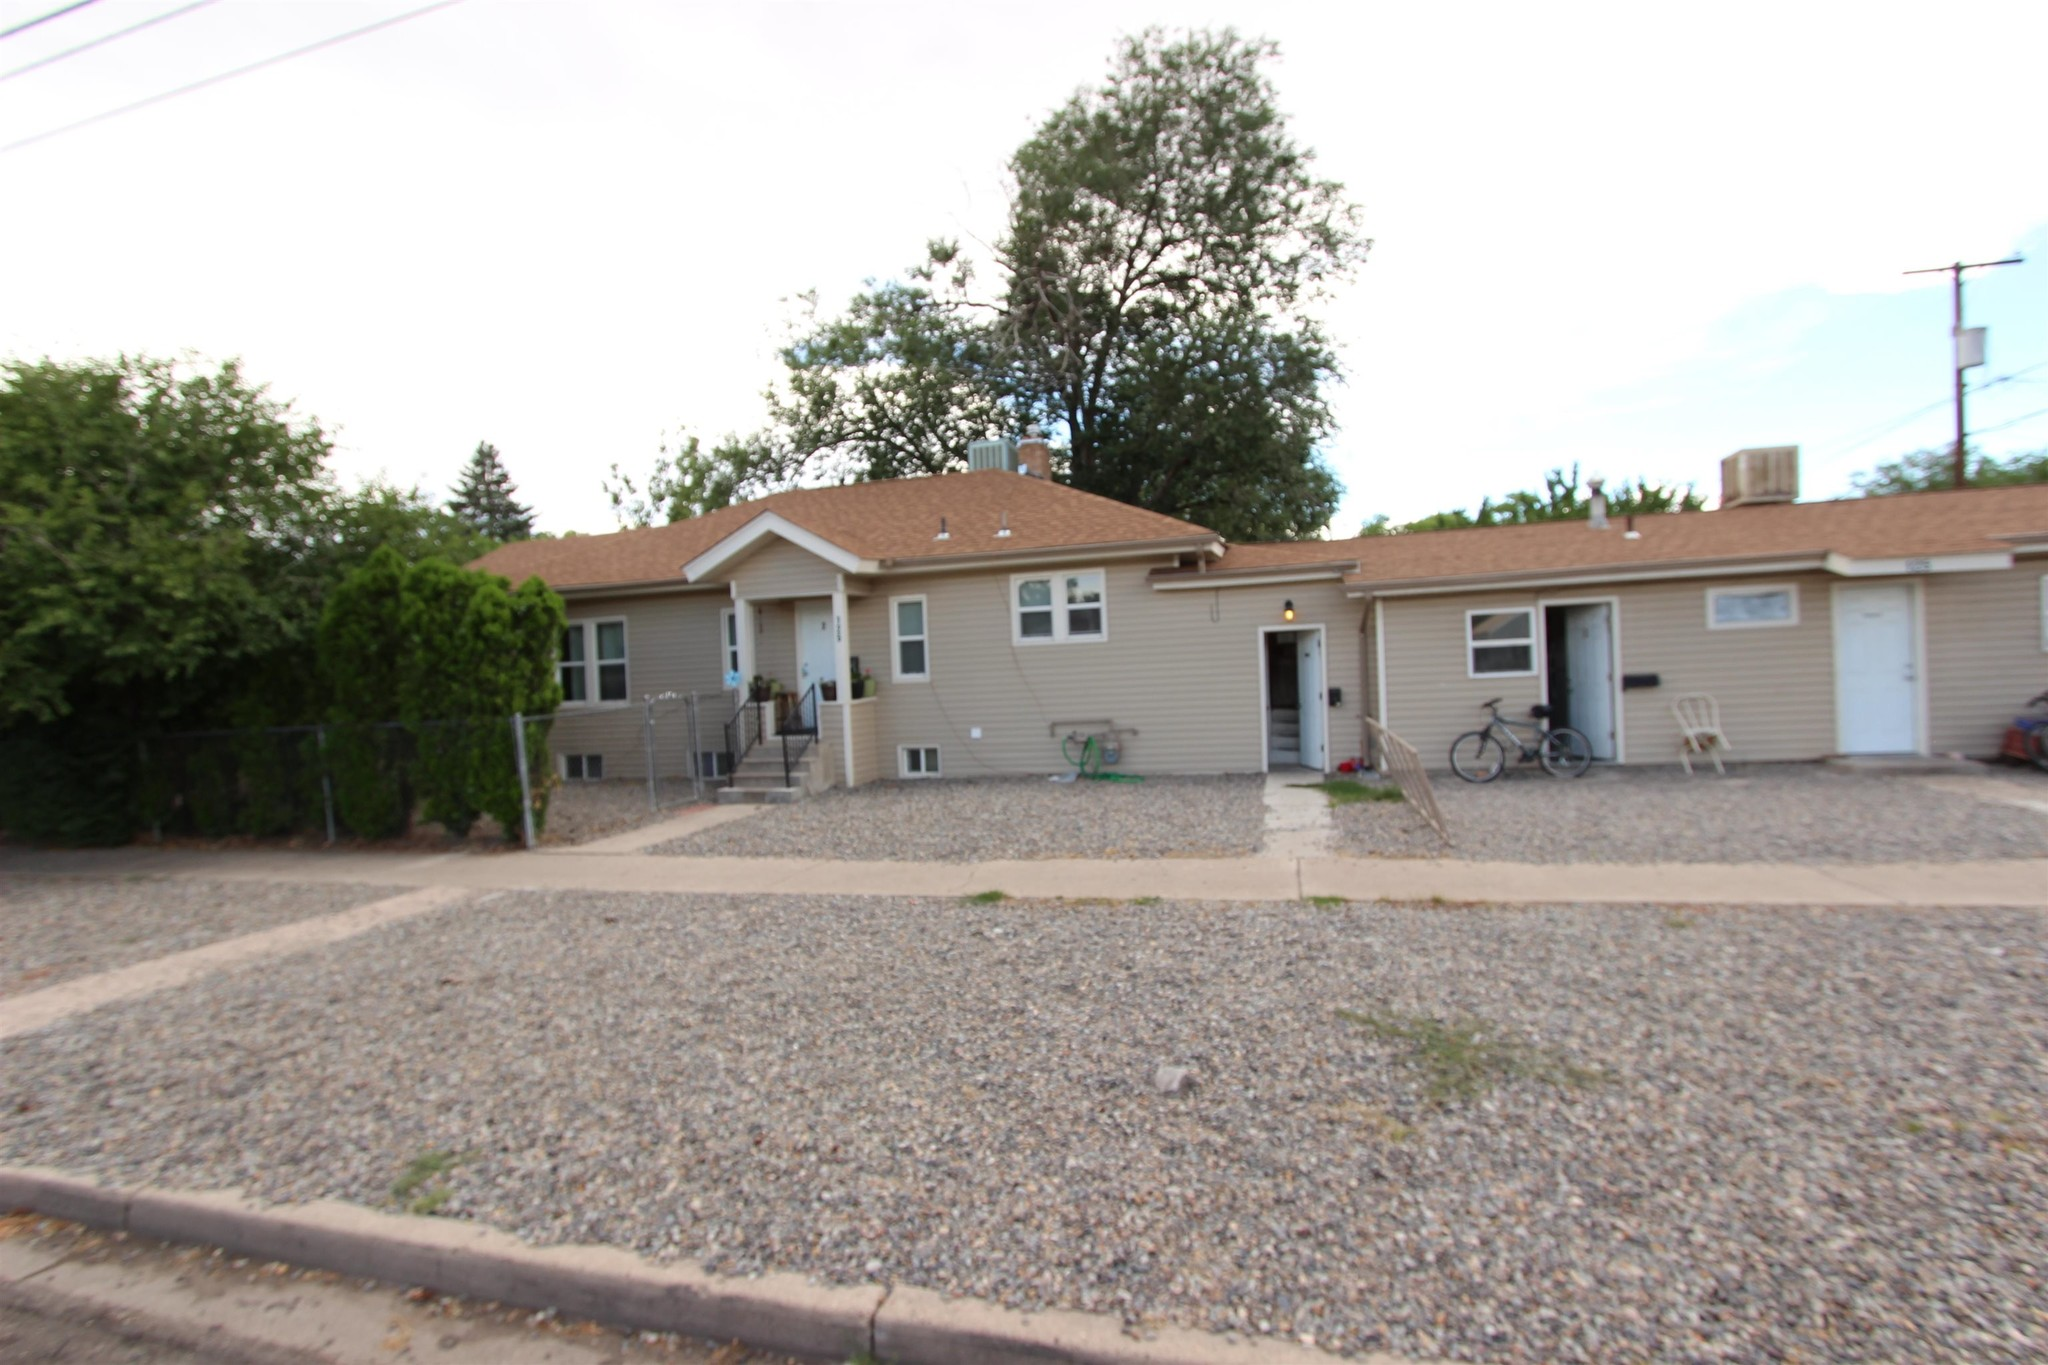 2-Bedroom House In Downtown Grand Junction